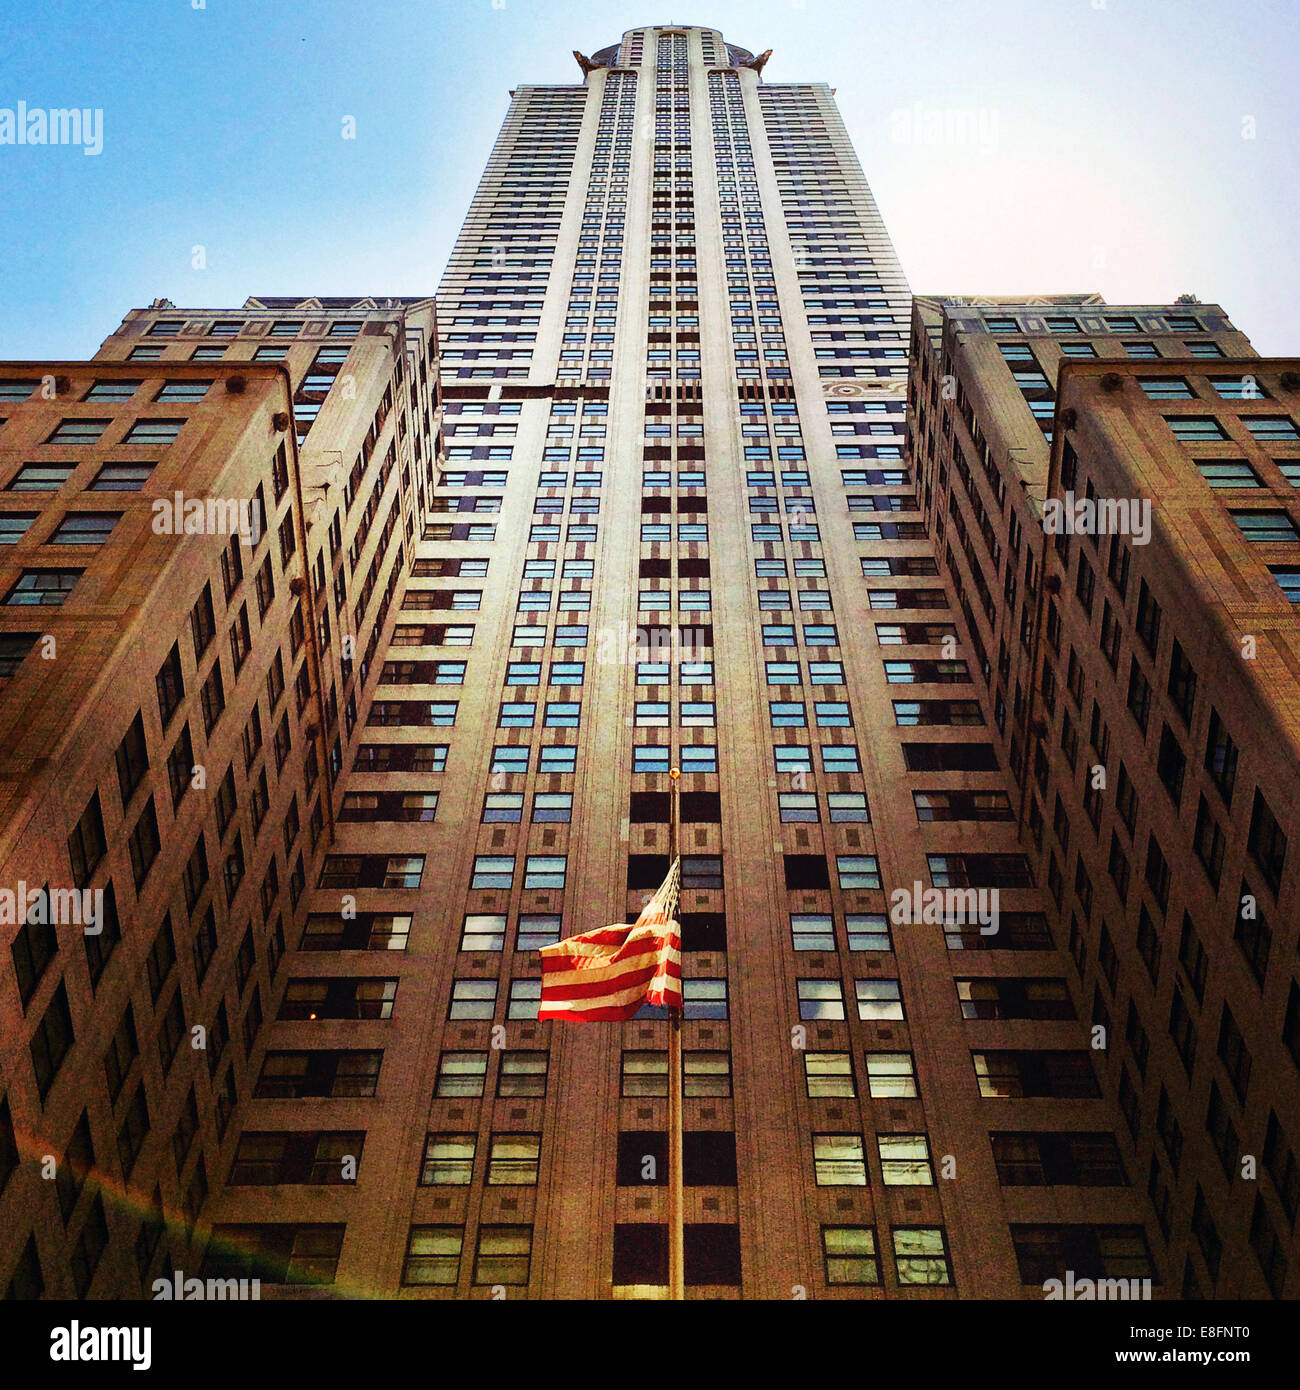 USA, l'État de New York, New York City, Low angle view of Chrysler building Photo Stock